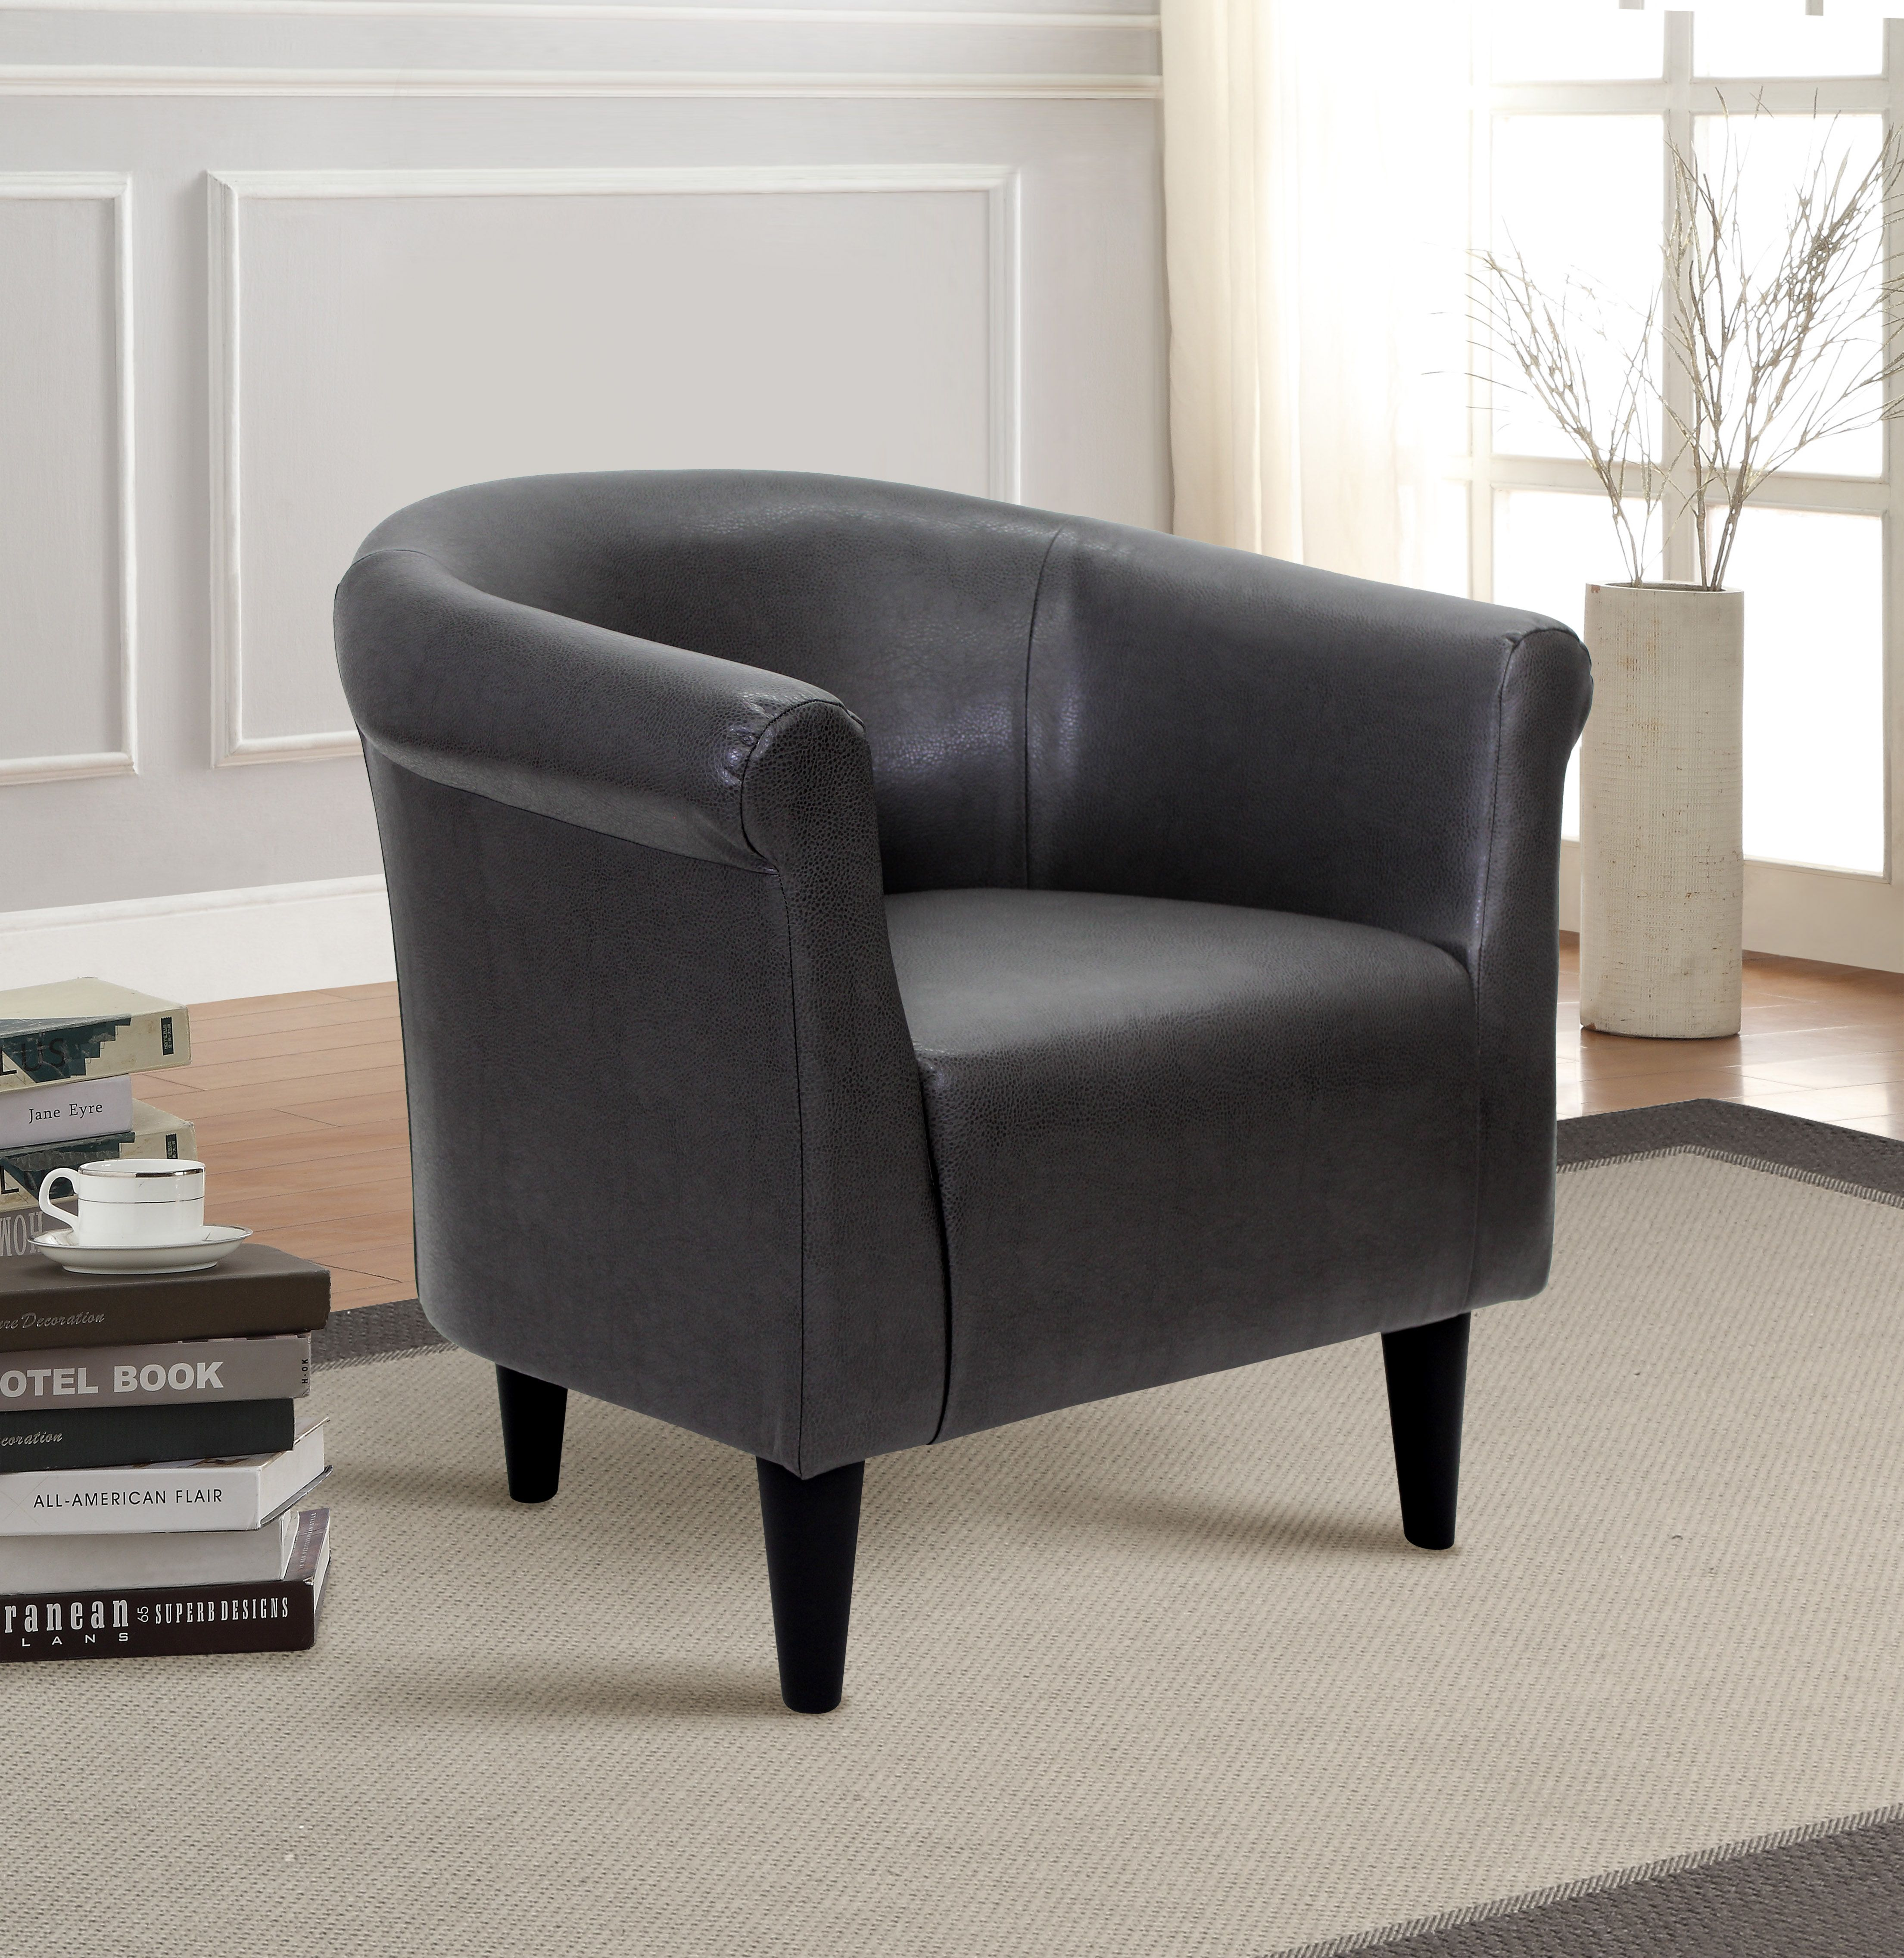 Home Contemporary Accent Chair Accent Chairs Accent Chairs For Living Room